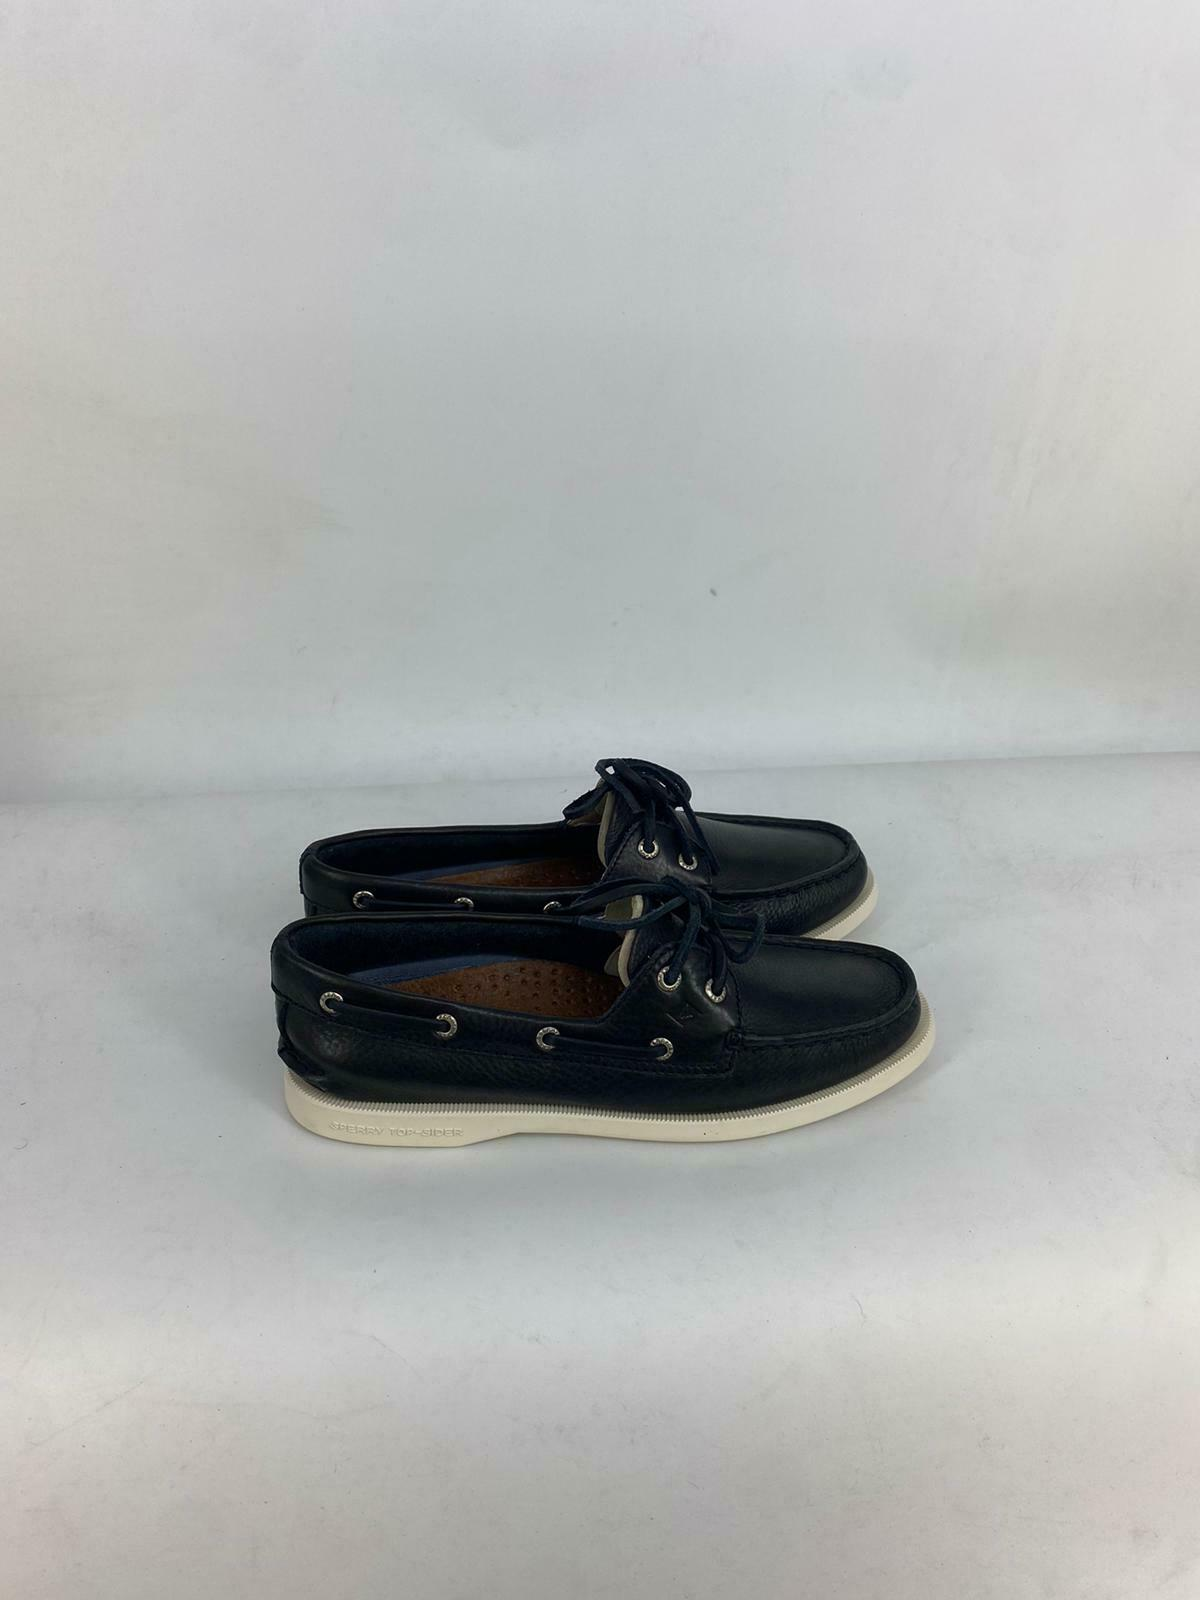 SPERRY WOMENS AUTHENTIC ORIGINAL WIDE LEATHER BOAT SHOE BLACK STS81164 SIZE 7.5W